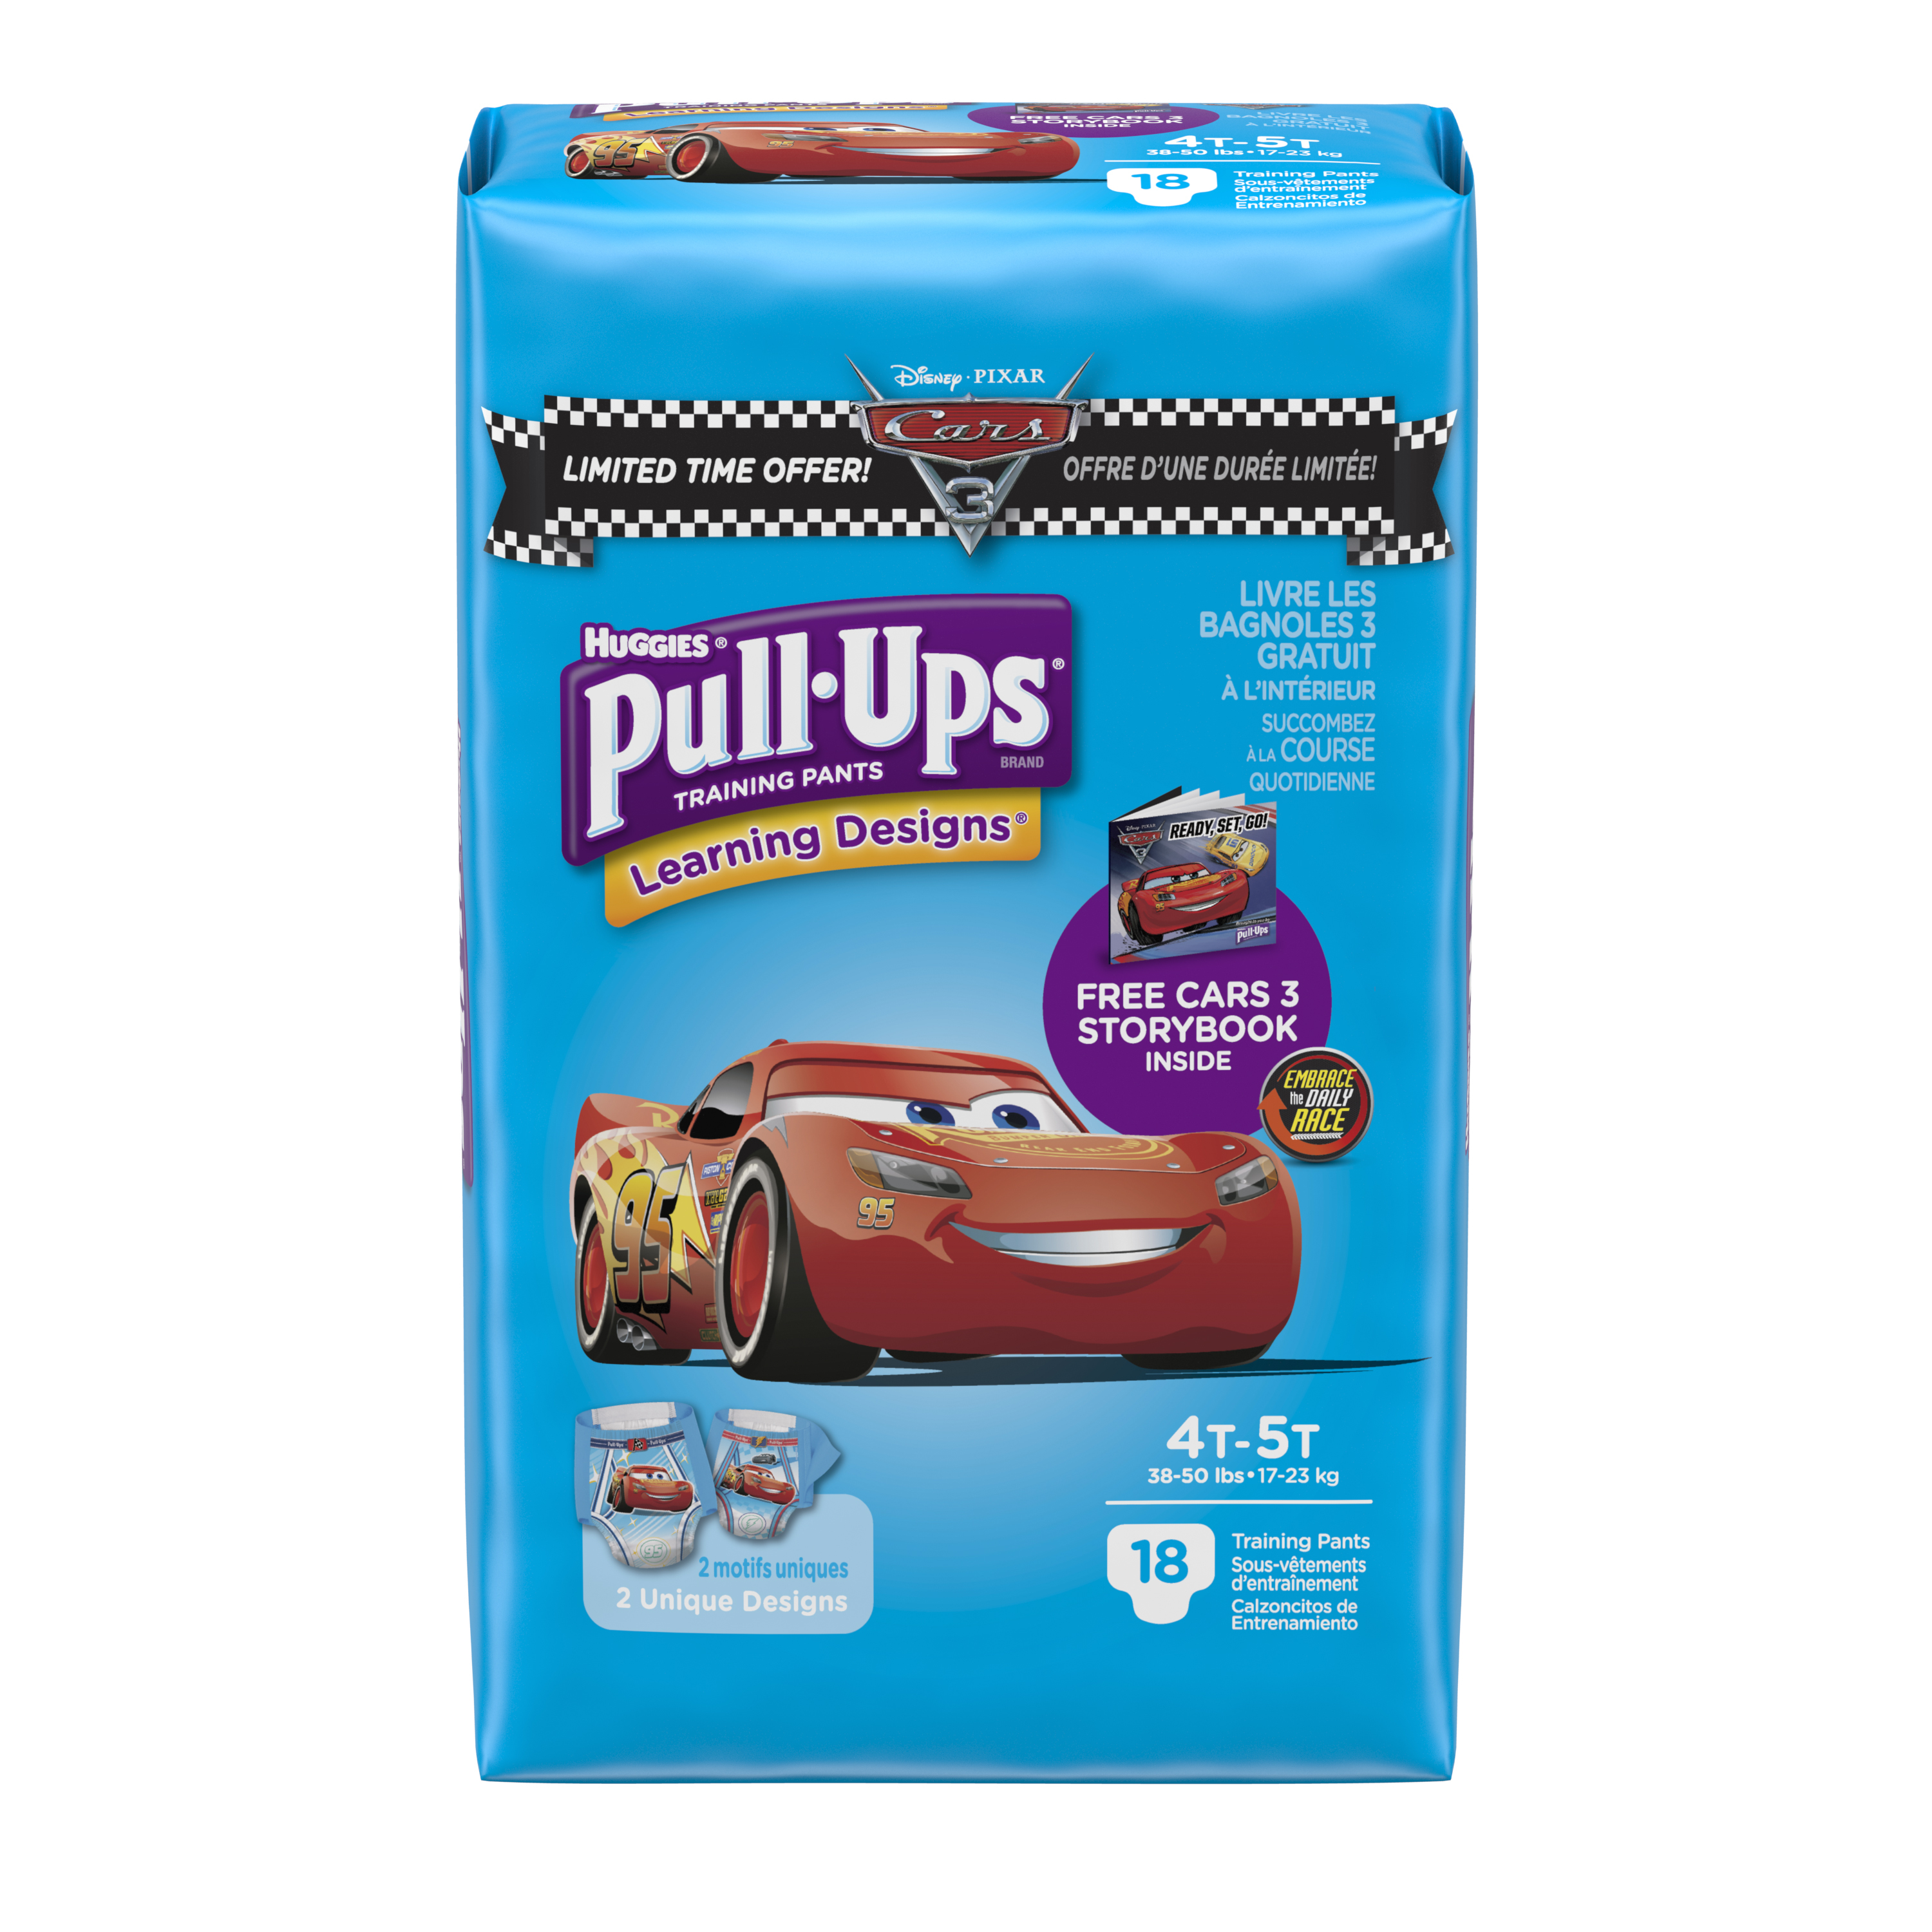 Pull-Ups Boys' Learning Designs Training Pants, Size 4T-5T, 18 Count